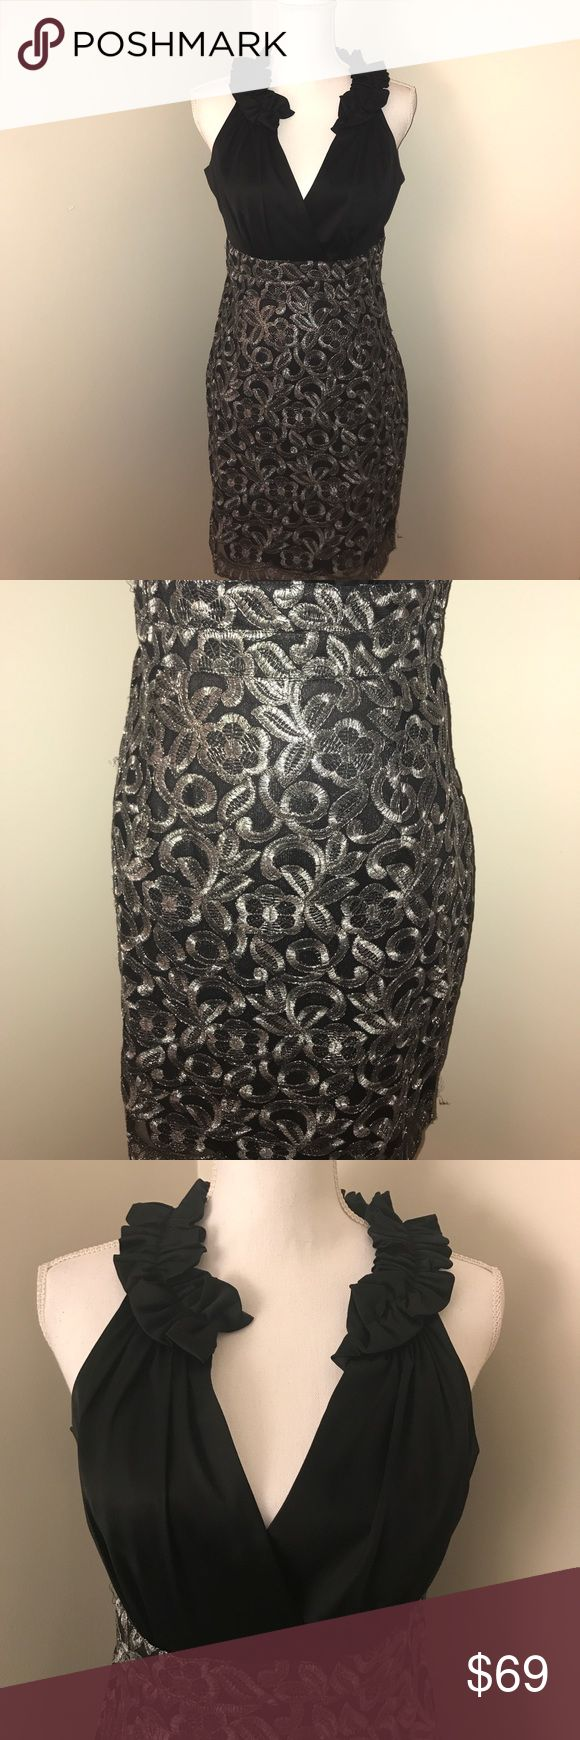 "Donna Ricco Black V-Neck Holiday Dress Measures approximately 16.5"" at bust and 36"" in length. Dress does have a little tear at the seam that is pictured. Worn one time for a NYE event. Donna Ricco Dresses"